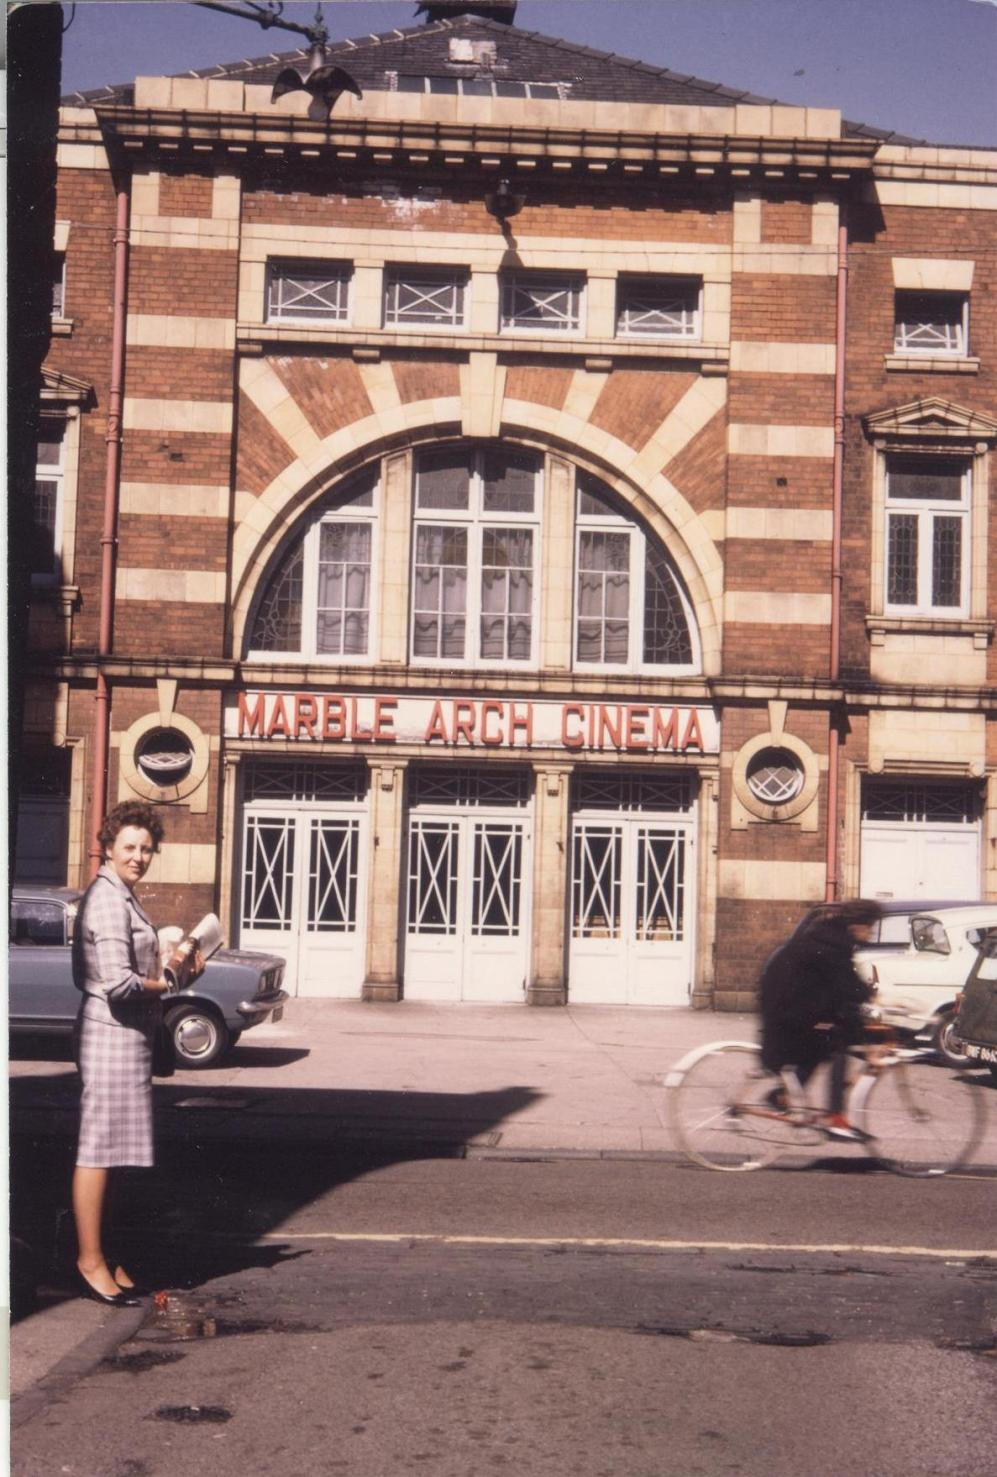 Marble Arch Cinema, Butcher Row, Beverley 1960s (archive ref DDPD-2-2-10)